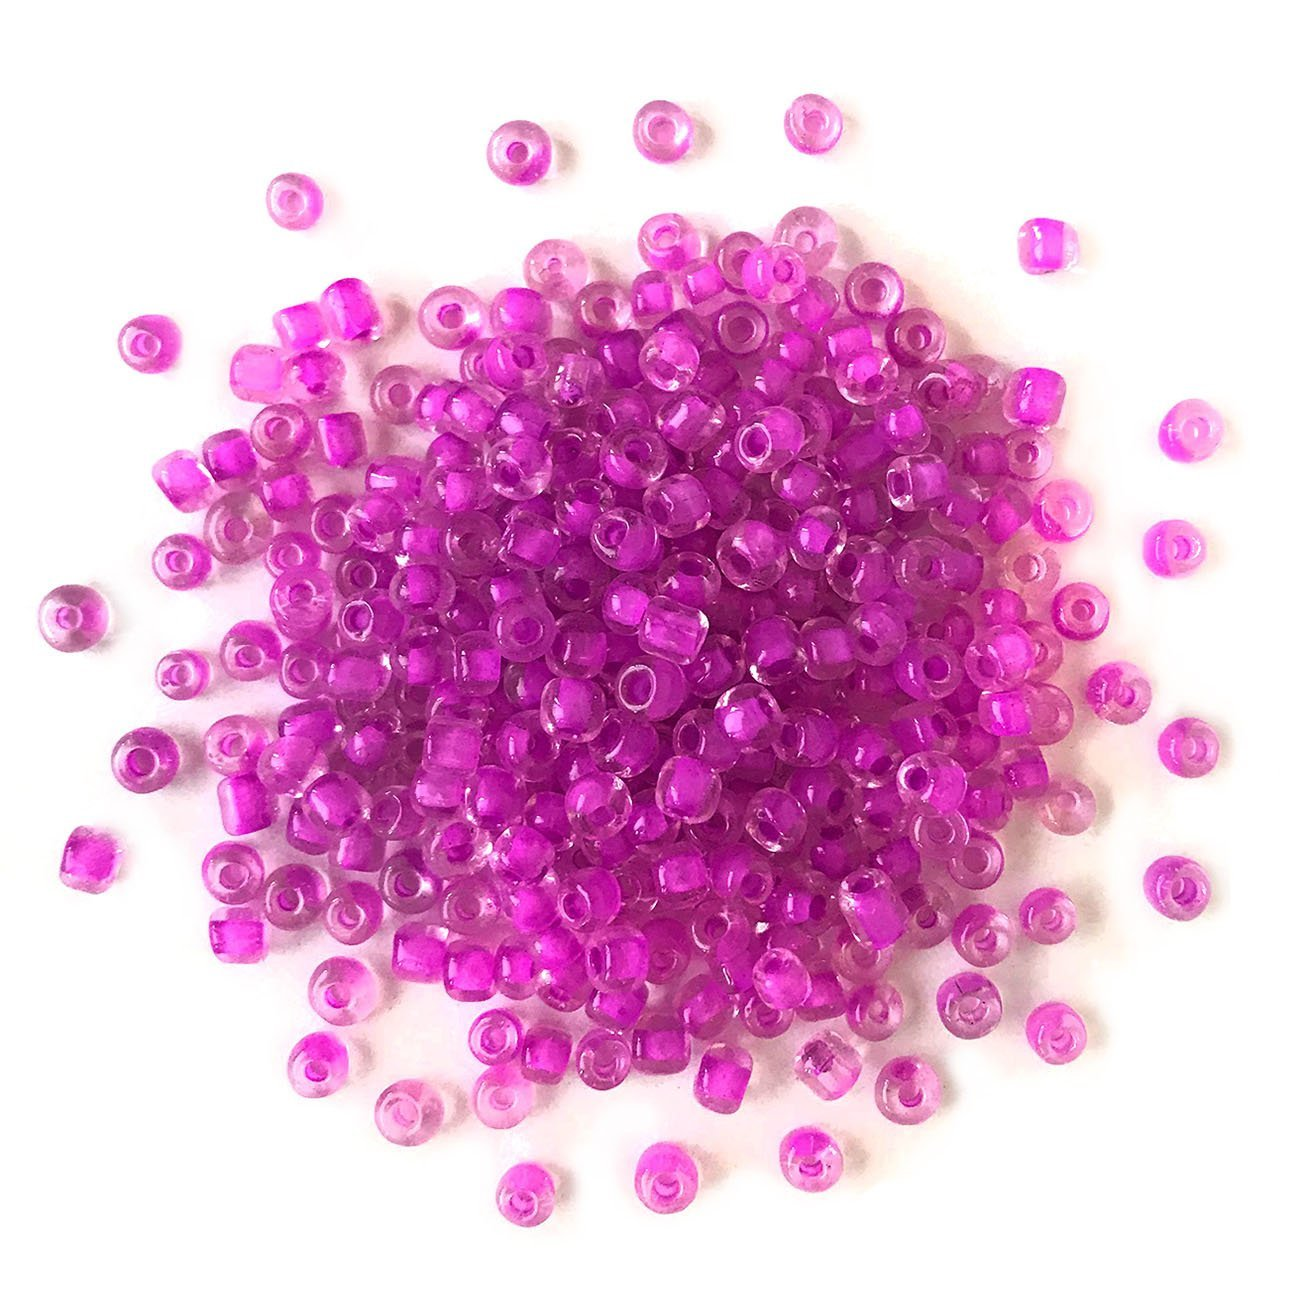 Magenta Seed Beads - 6/0